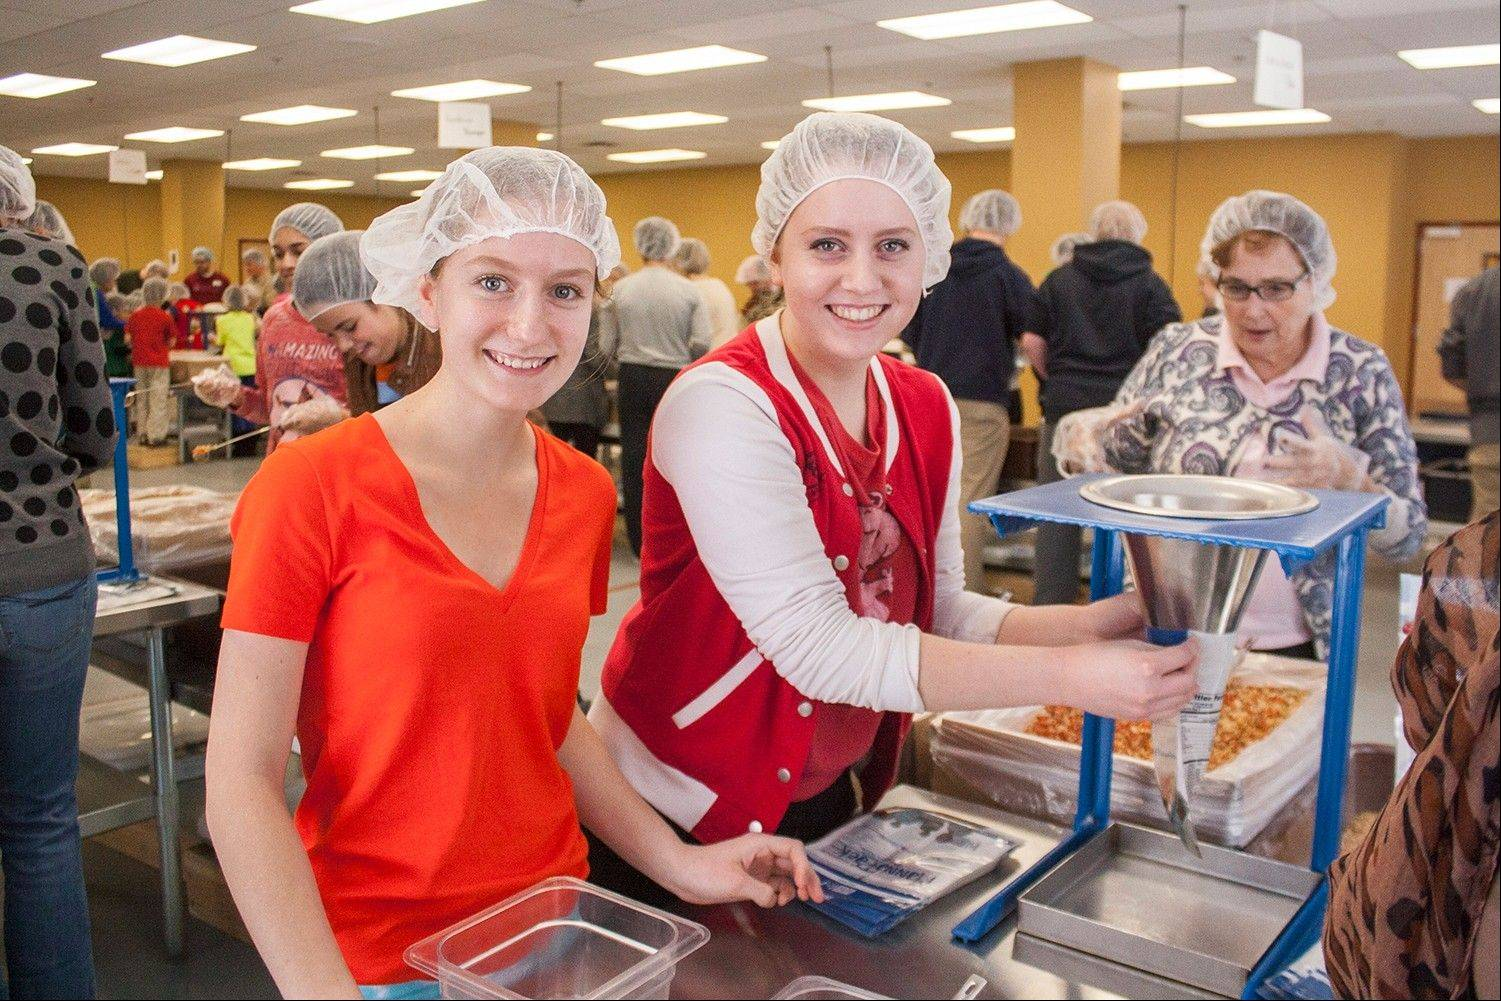 Woodlands Academy of the Sacred Heart students Elizabeth, left, and Laura Bartusiak of Lake Forest were among the volunteers who packed meals at Feed My Starving Children in Libertyville.